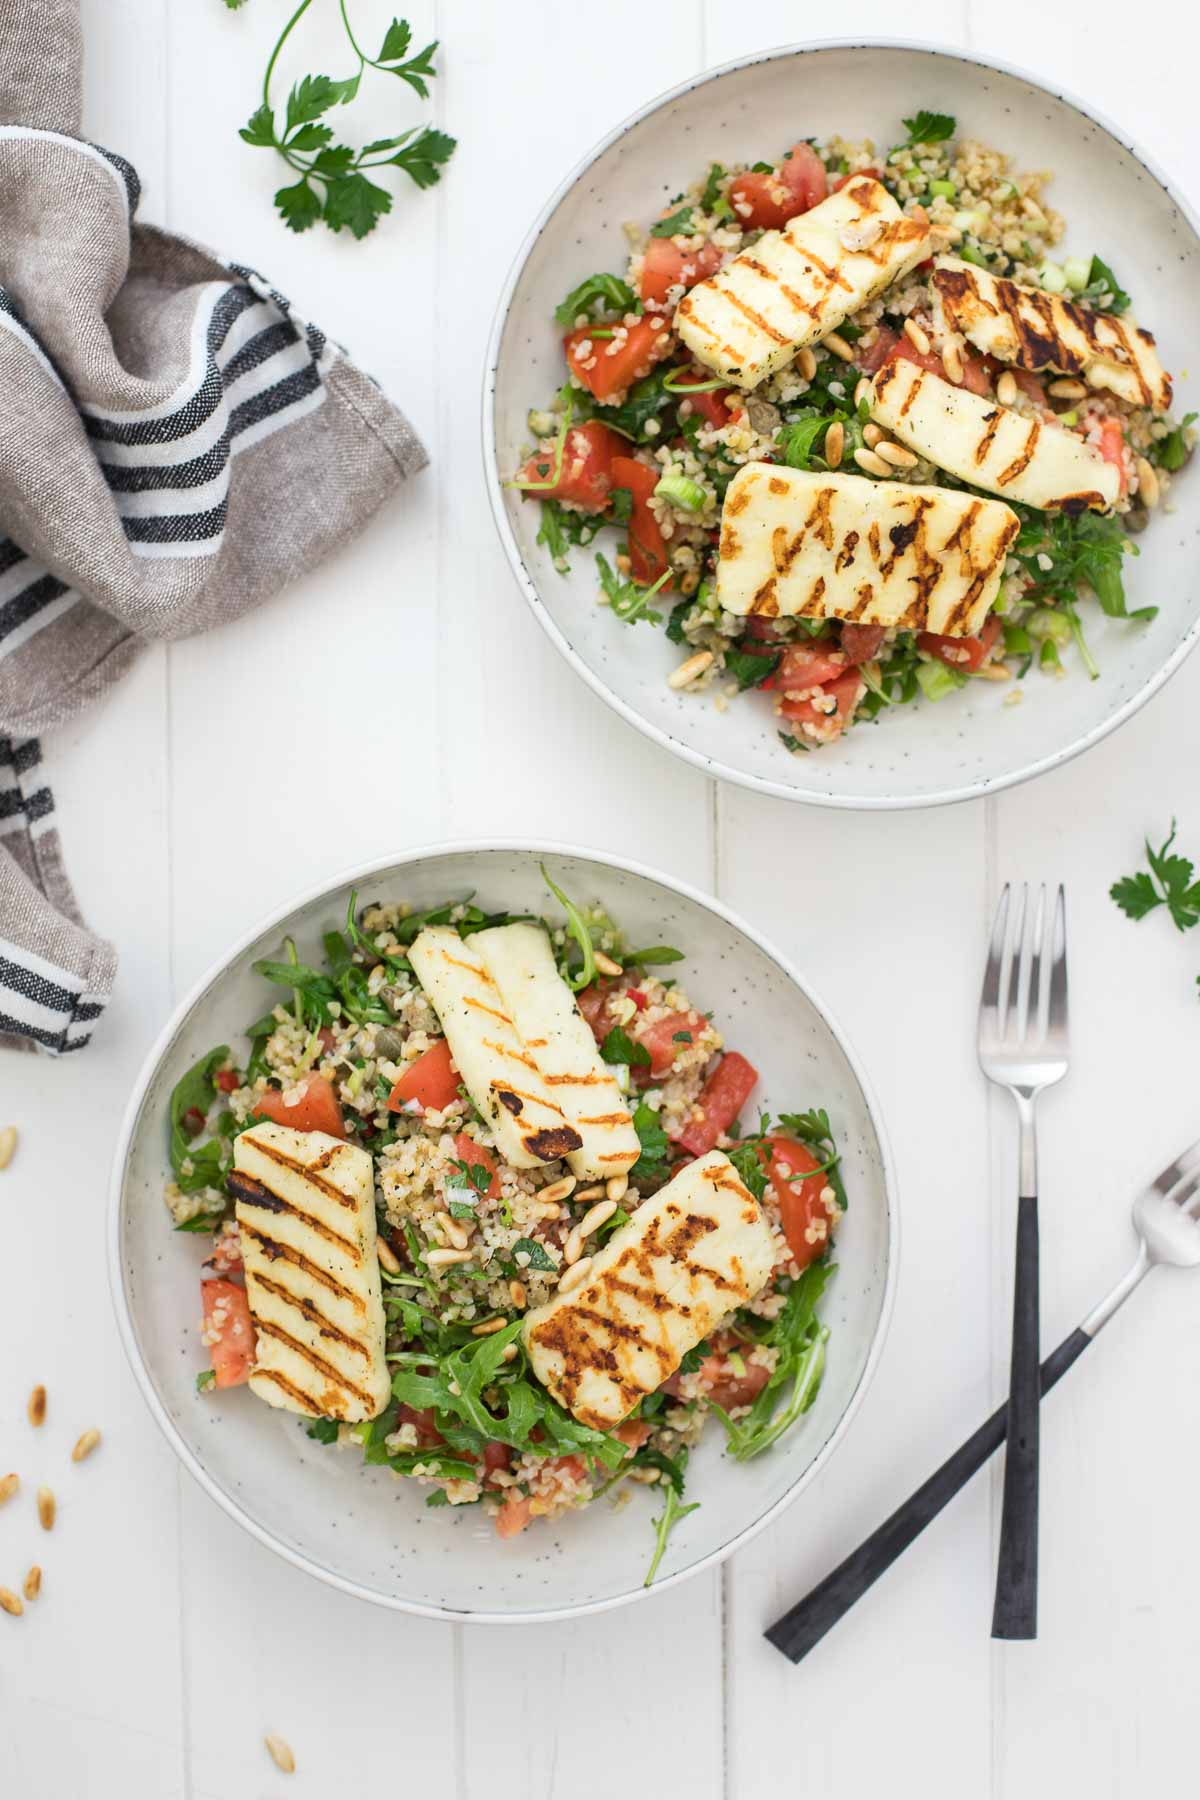 Bulgur Salad with Halloumi and Lemon-Caper Dressing